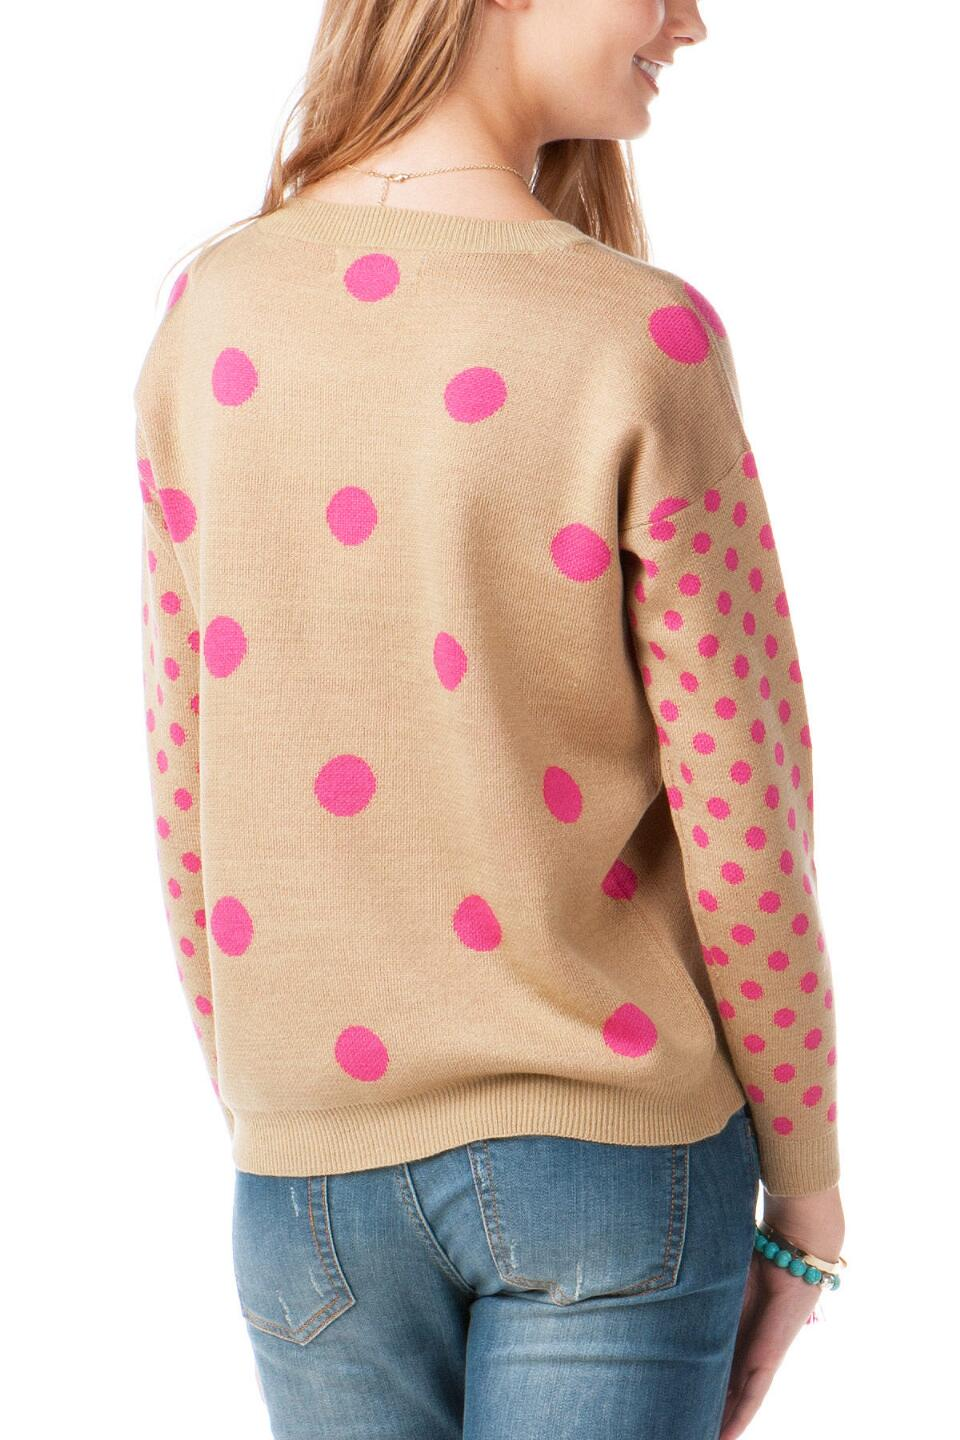 Clifton Polka Dot Sweater -  beige-clback